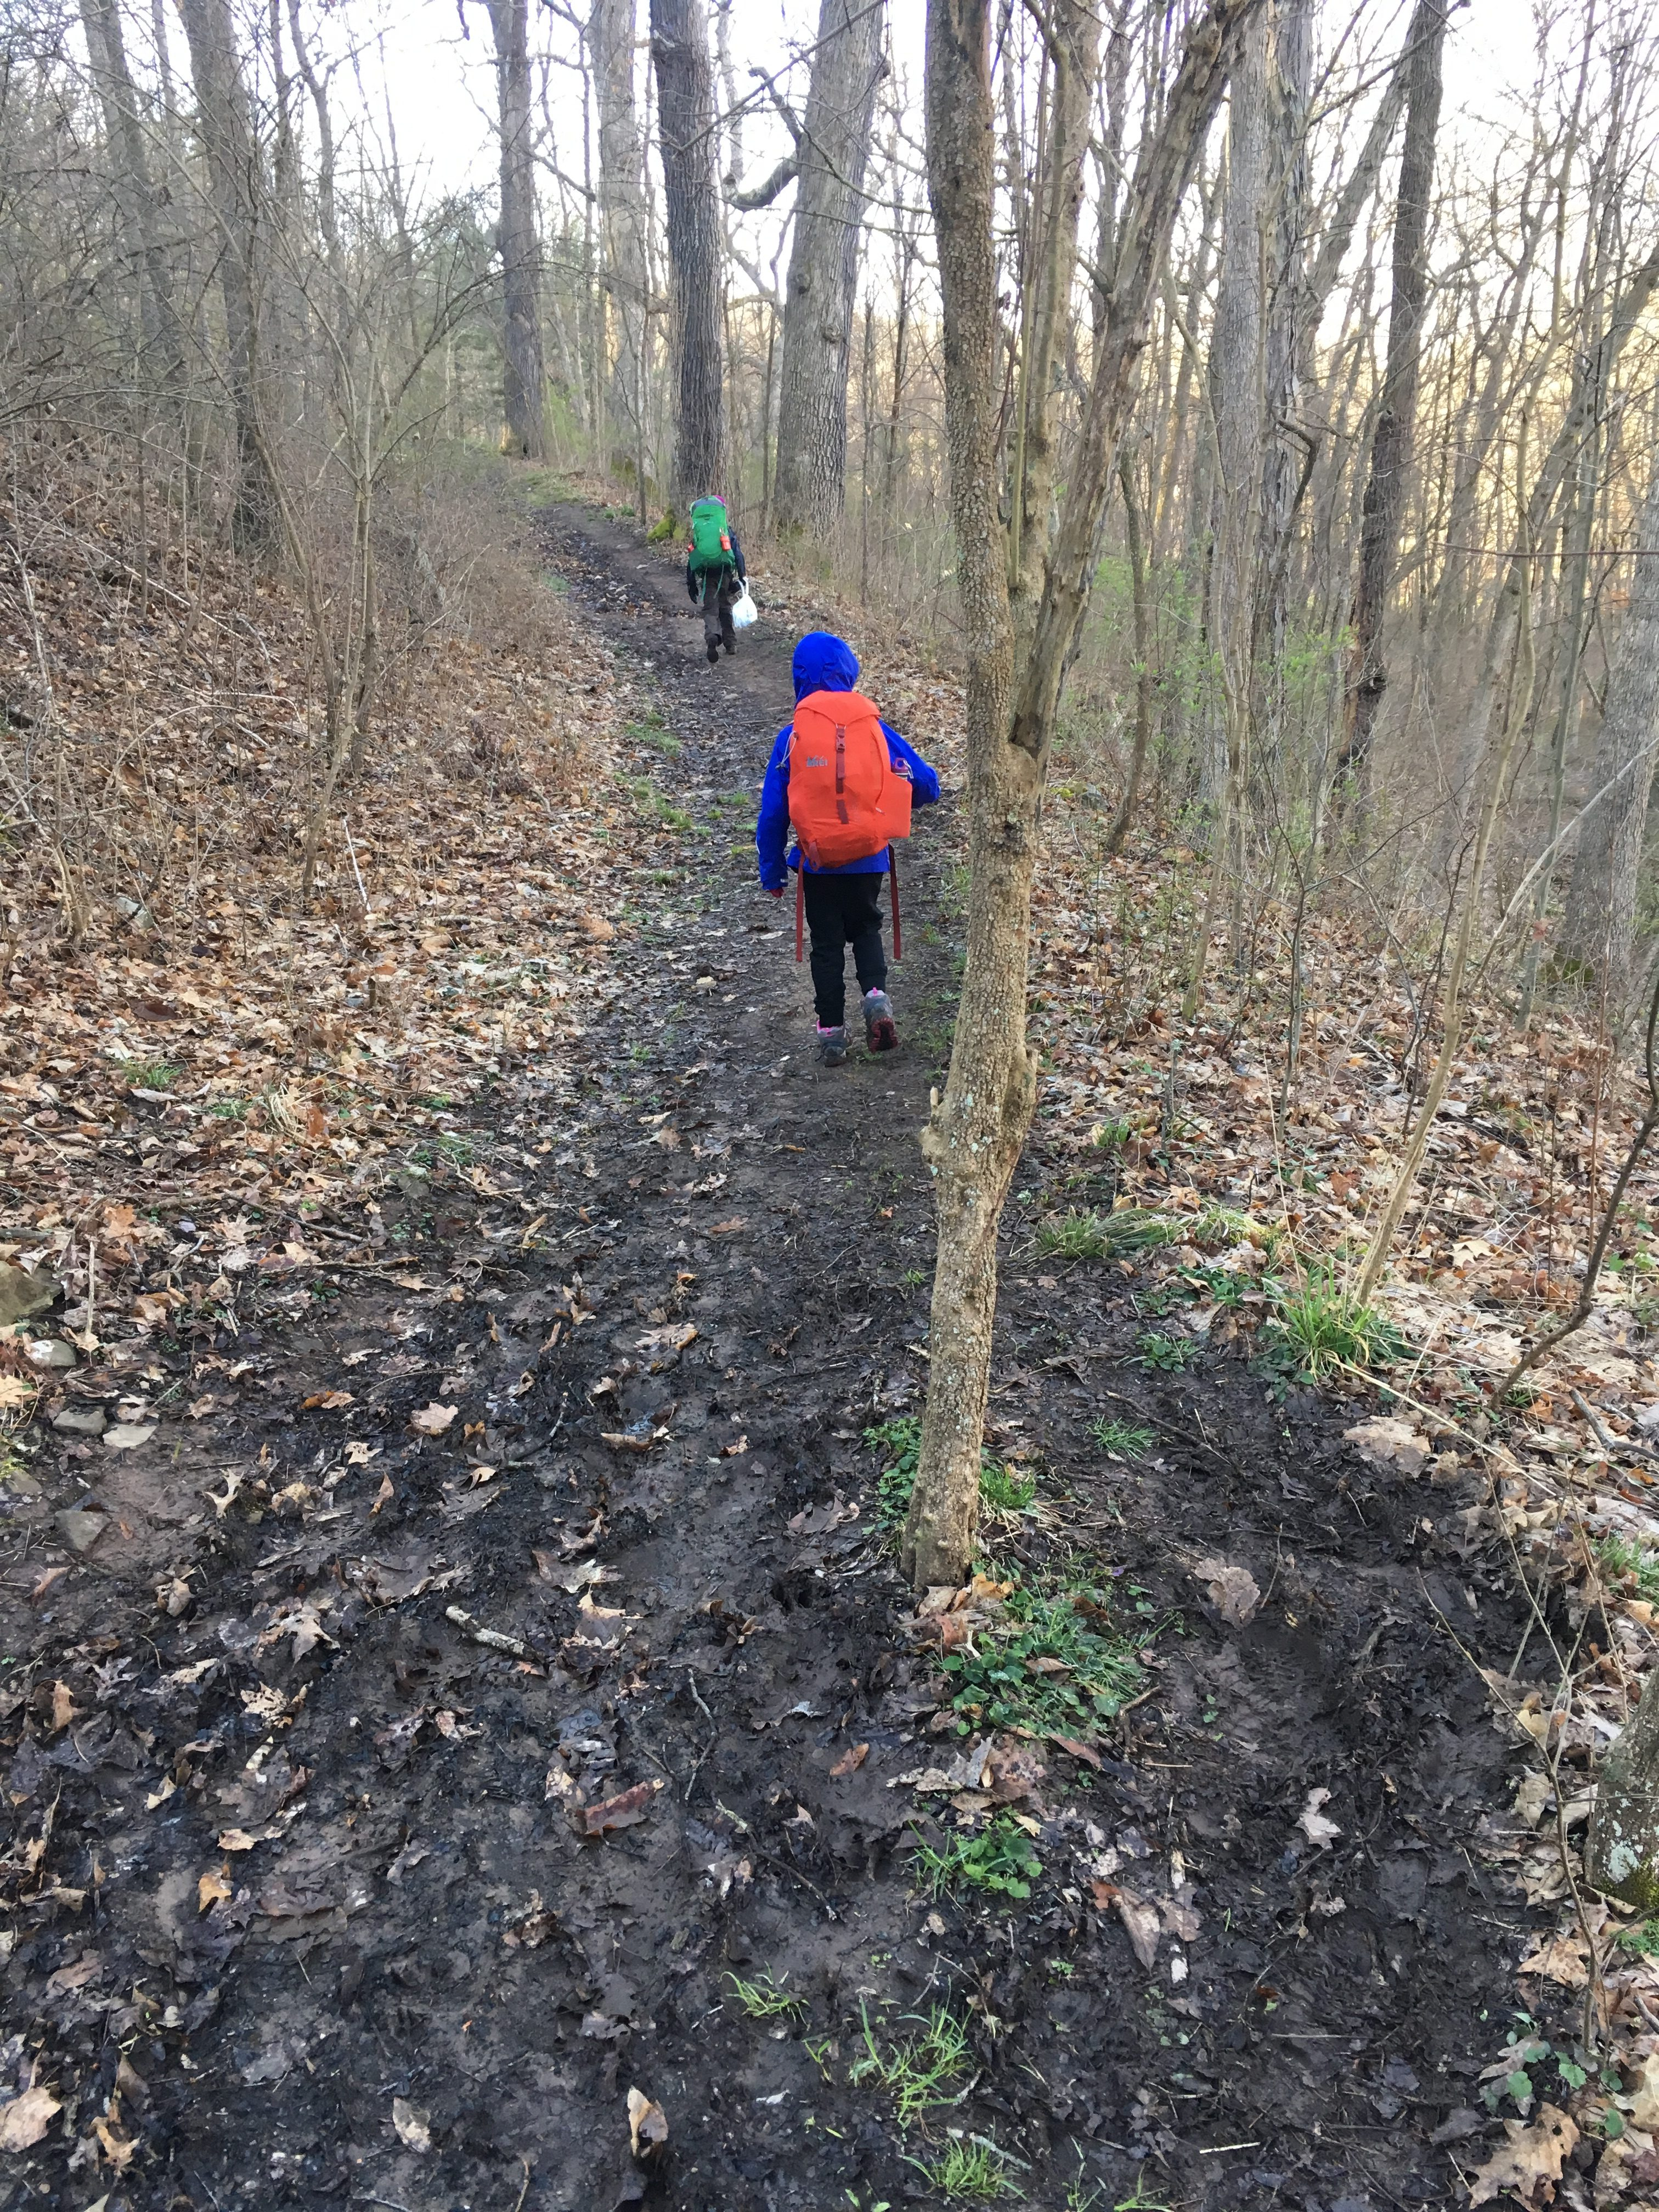 Backpacking at Raccoon Creek State Park in Pennsylvania